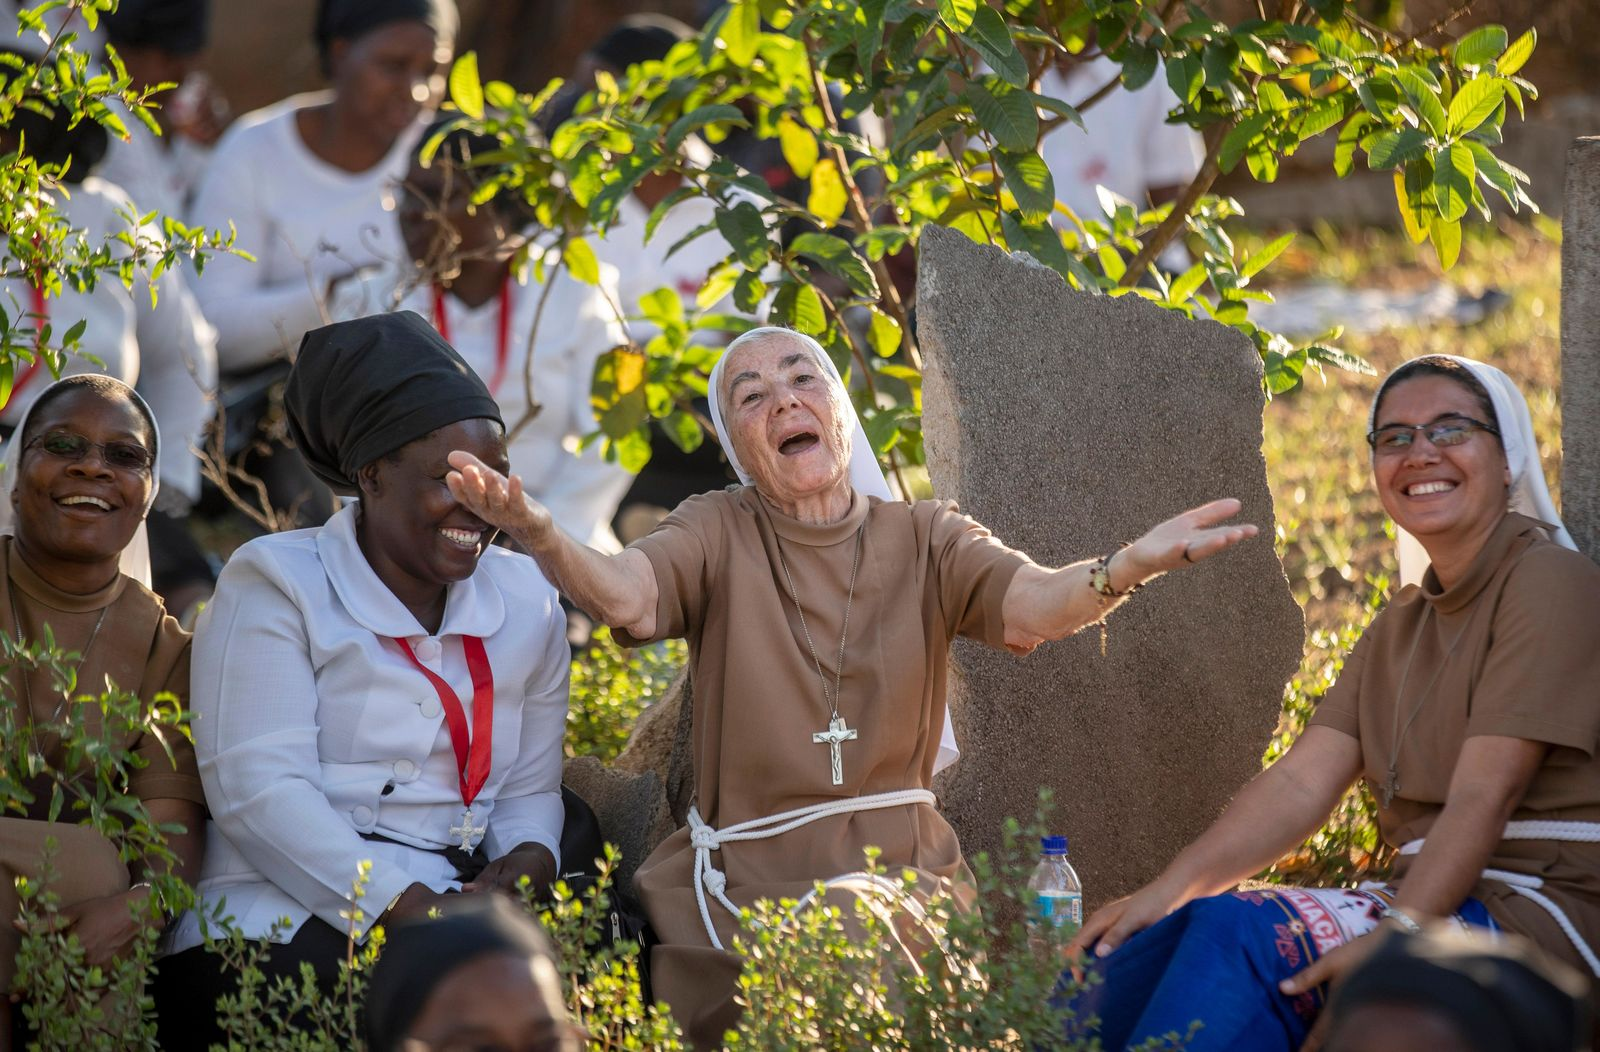 A nun gestures as she and others wait to see Pope Francis, ahead of his expected arrival near to the Apostolic Nunciature in the capital Maputo, Mozambique Wednesday, Sept. 4, 2019. Pope Francis is opening a three-nation pilgrimage to southern Africa with a strategic visit to Mozambique, just weeks after the country's ruling party and armed opposition signed a new peace deal and weeks before national elections. (AP Photo/Ben Curtis)